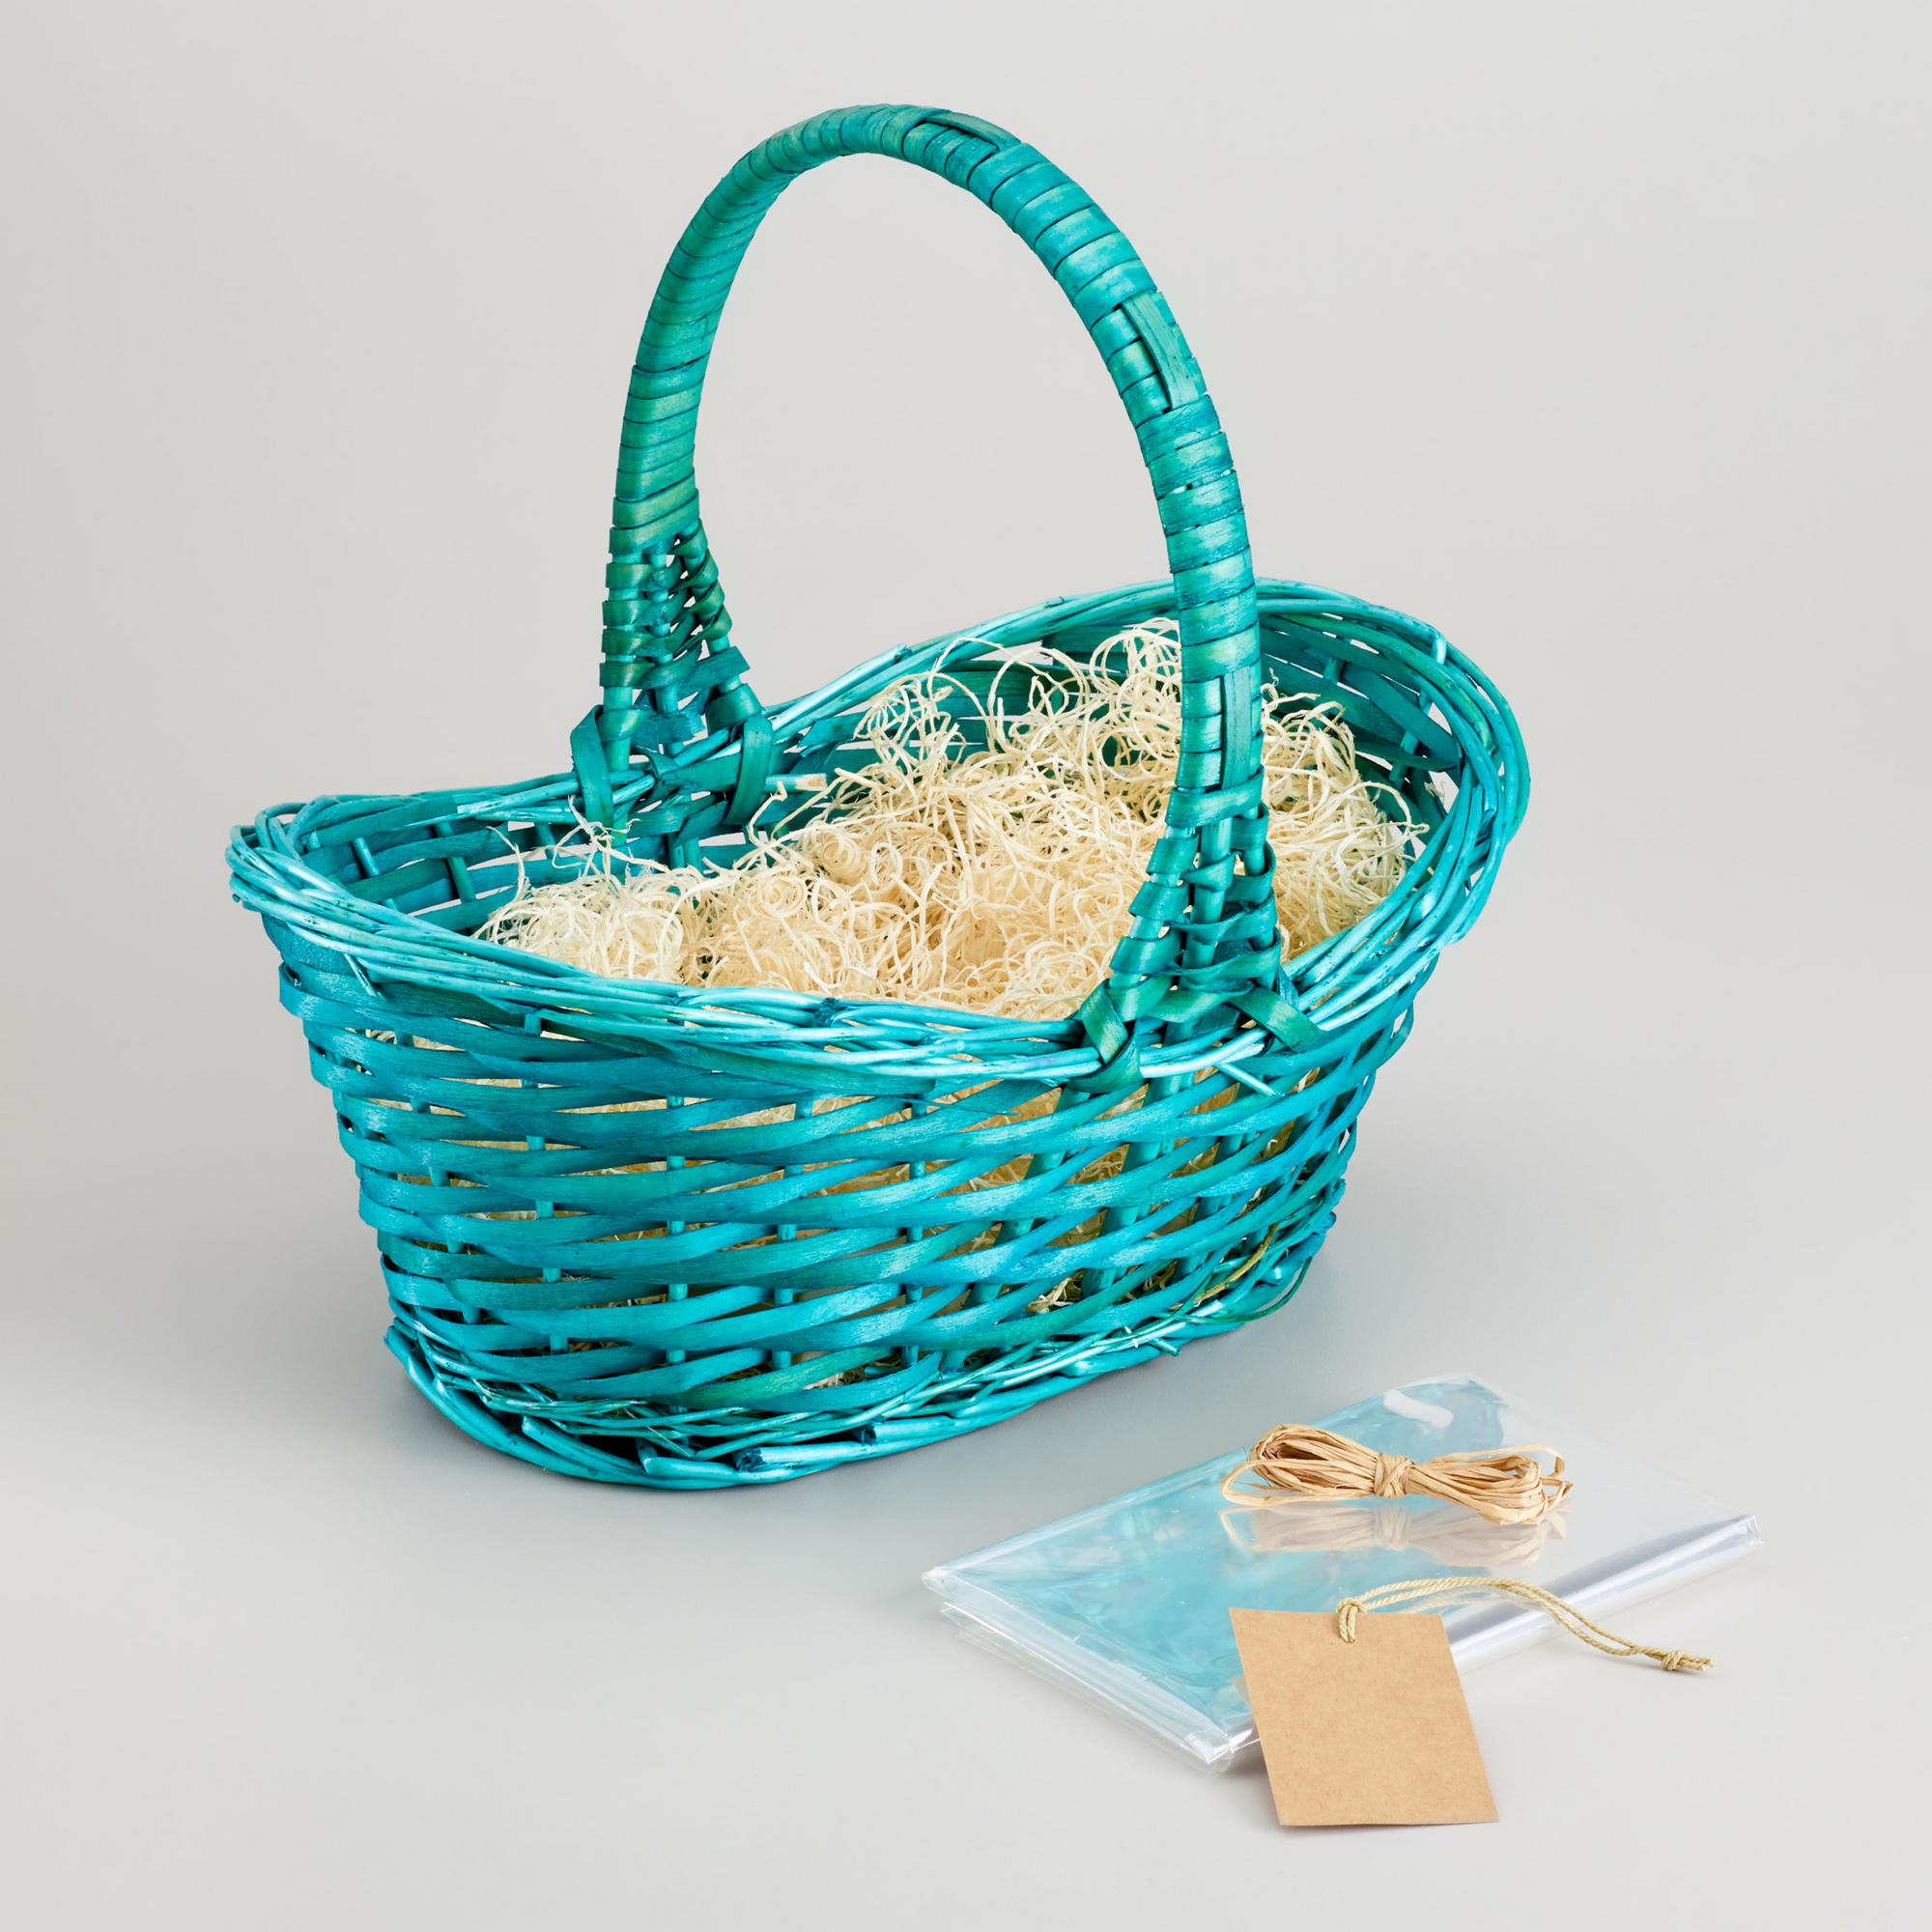 Huge easter sale 499 easter baskets and more plus free shipping huge easter sale 499 easter baskets and more plus free shipping izmirmasajfo